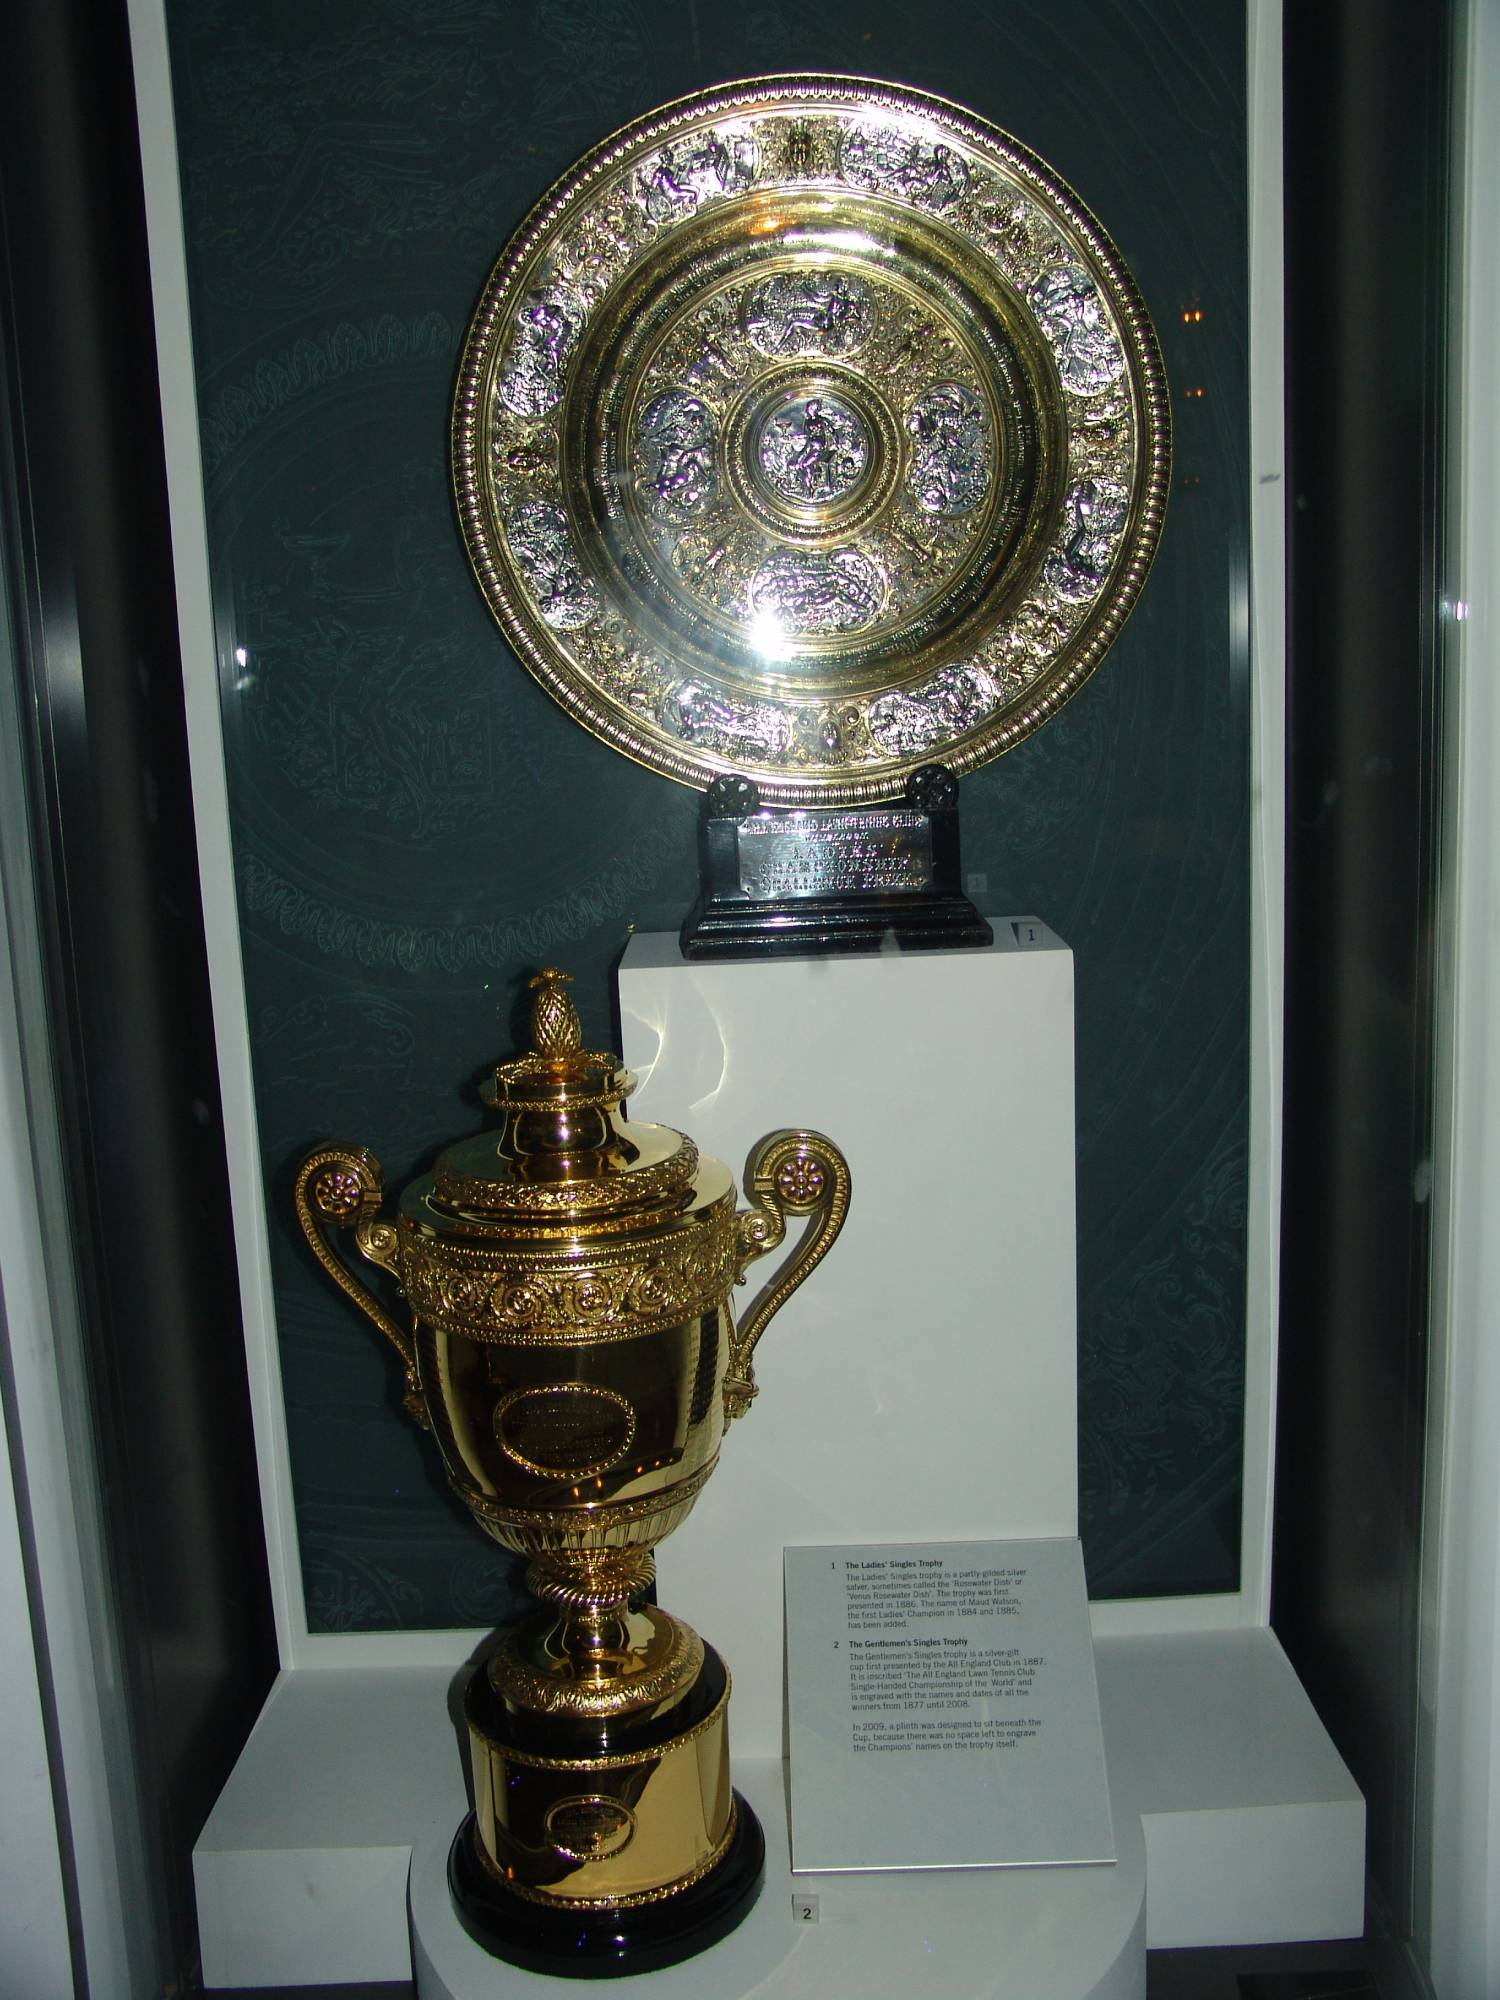 Learn more about Tennis at the Wimbledon Tennis Museum | PassPorter.com